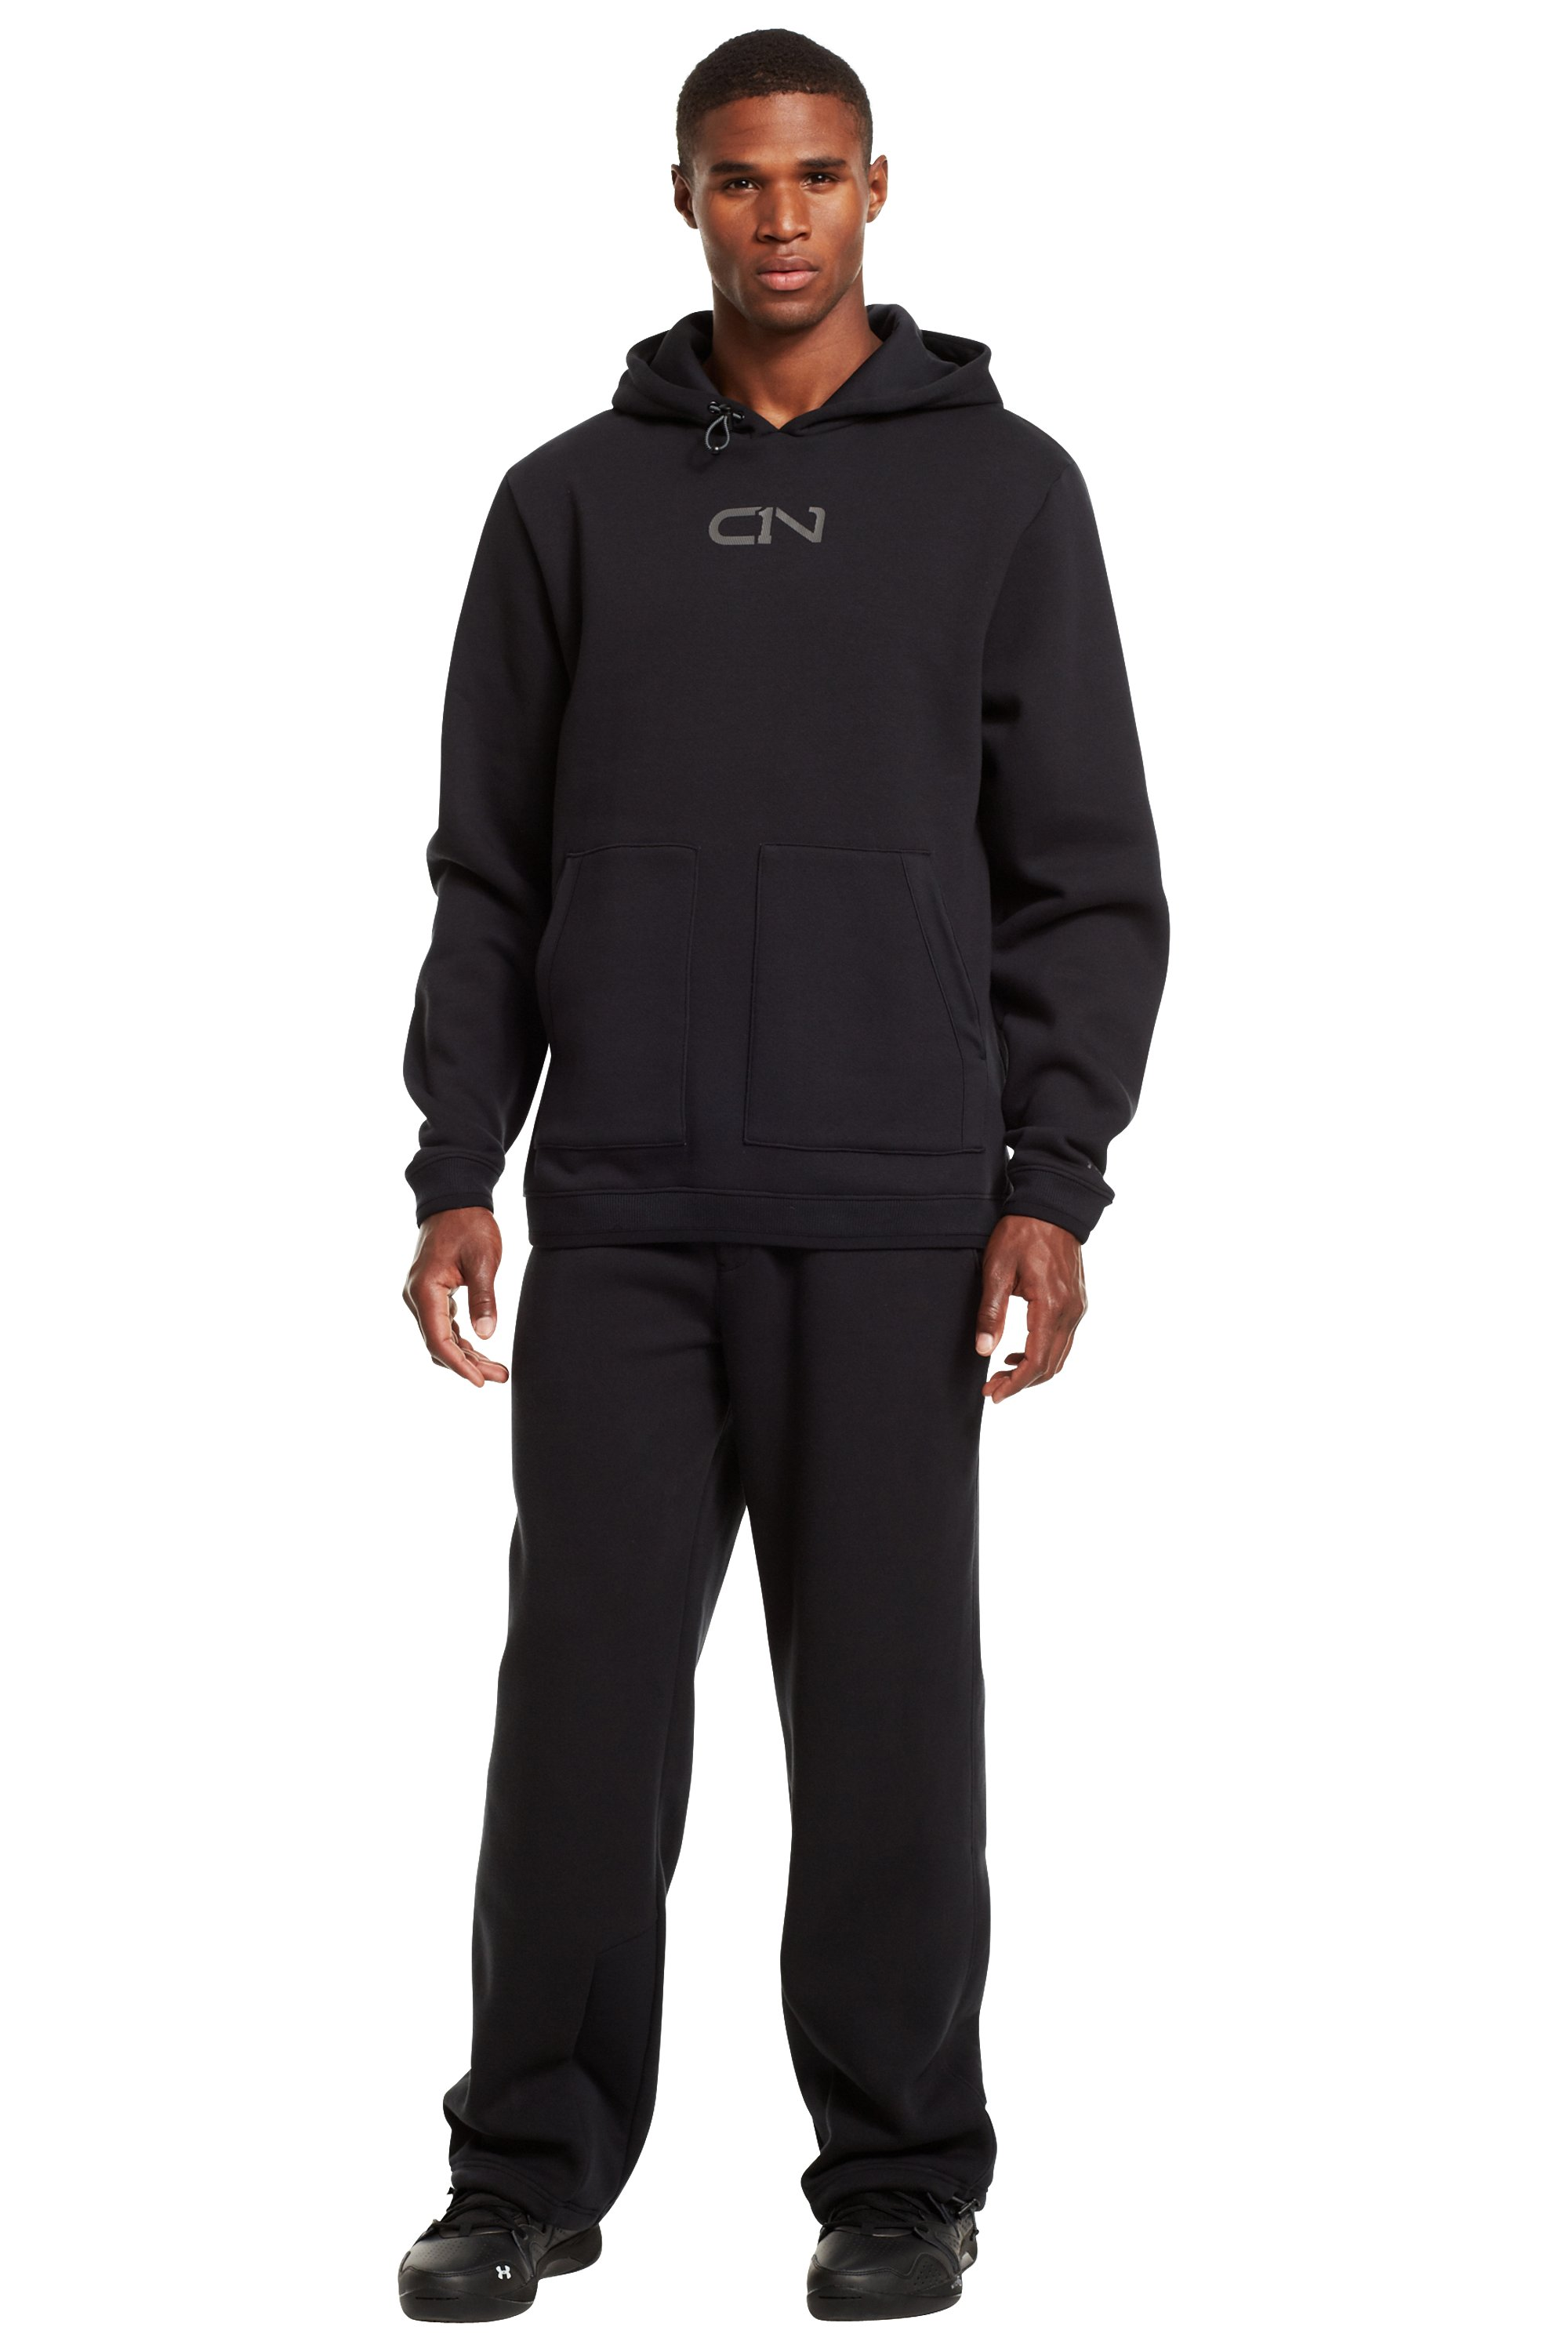 Men's C1N Charged Cotton® Storm Pants, Black , zoomed image